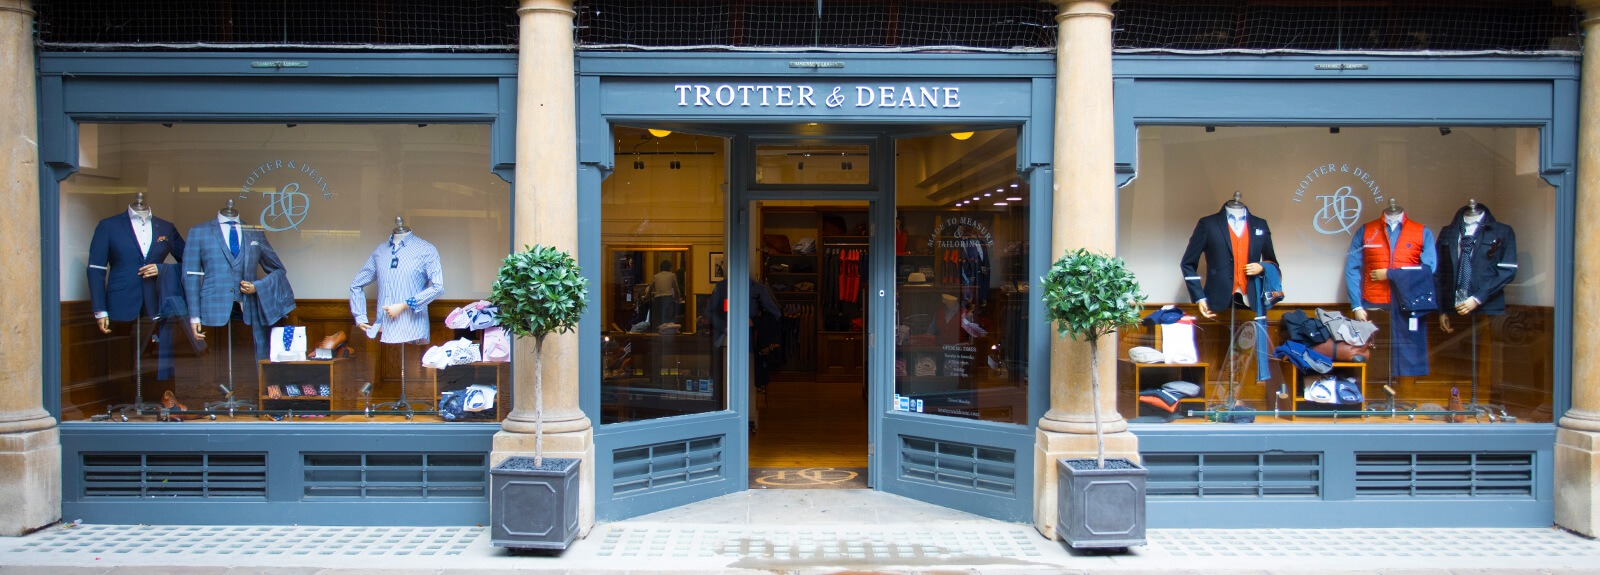 Trotter & Deane Cambridge